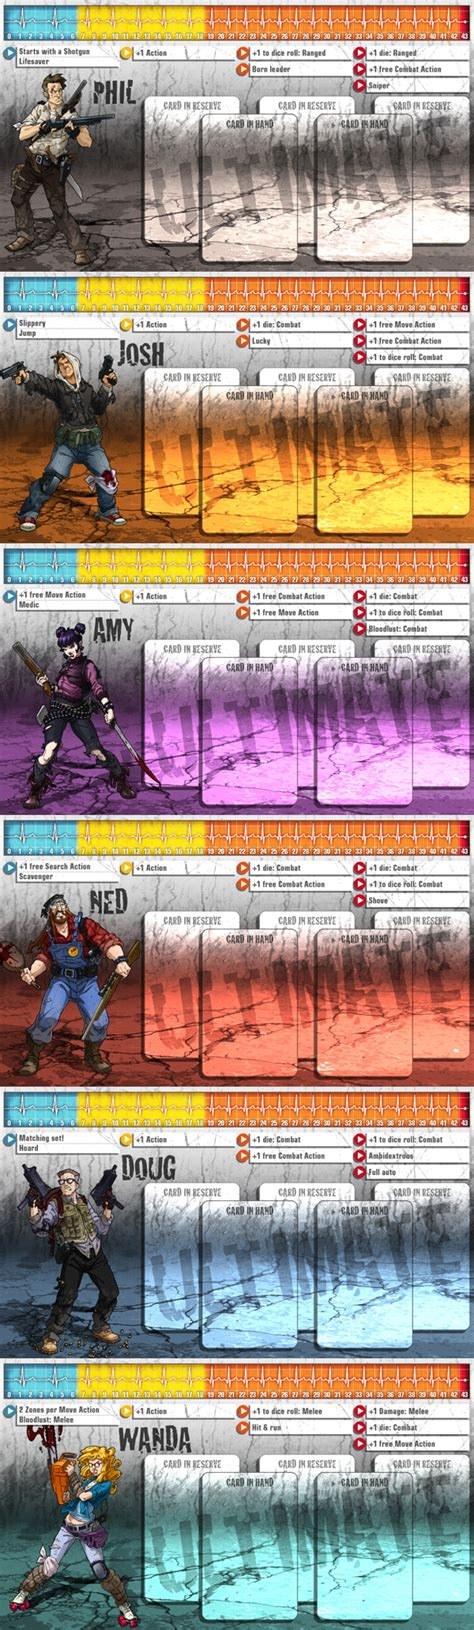 zombicide character card template zombicide season 3 the ultimate survivors 1 zombicide